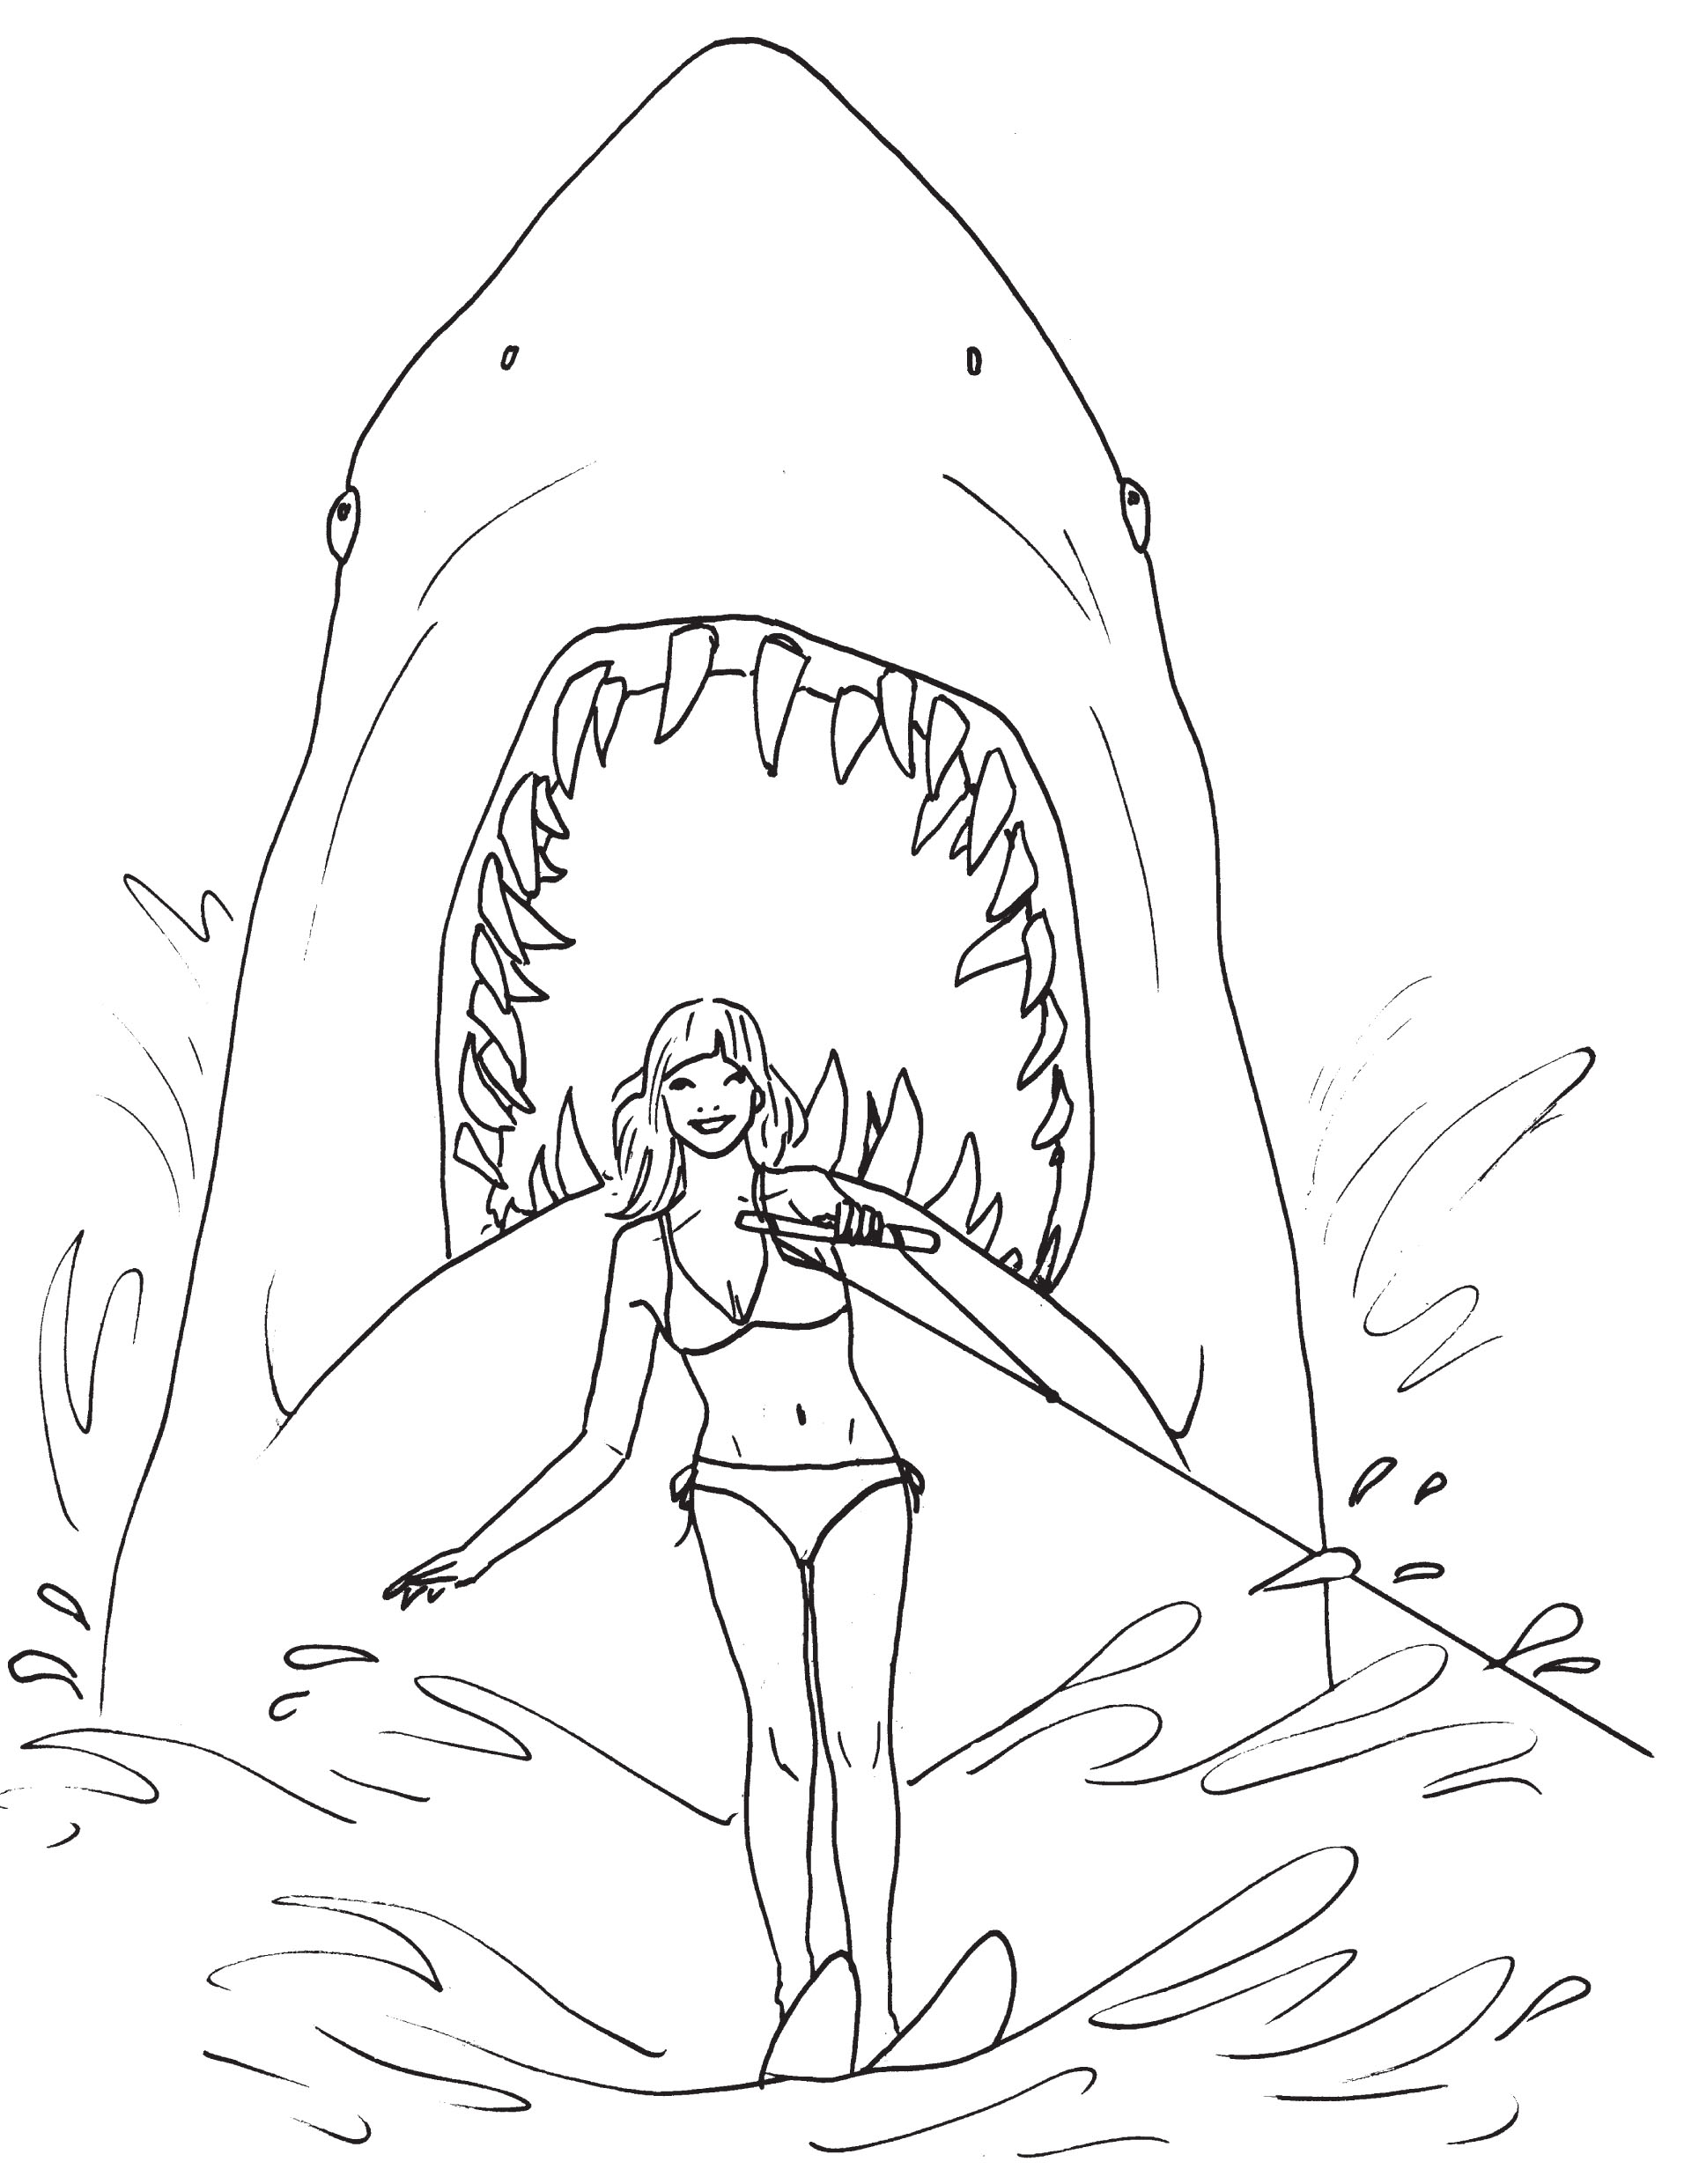 Coloring Book How Great : Great white shark coloring pages to download and print for free